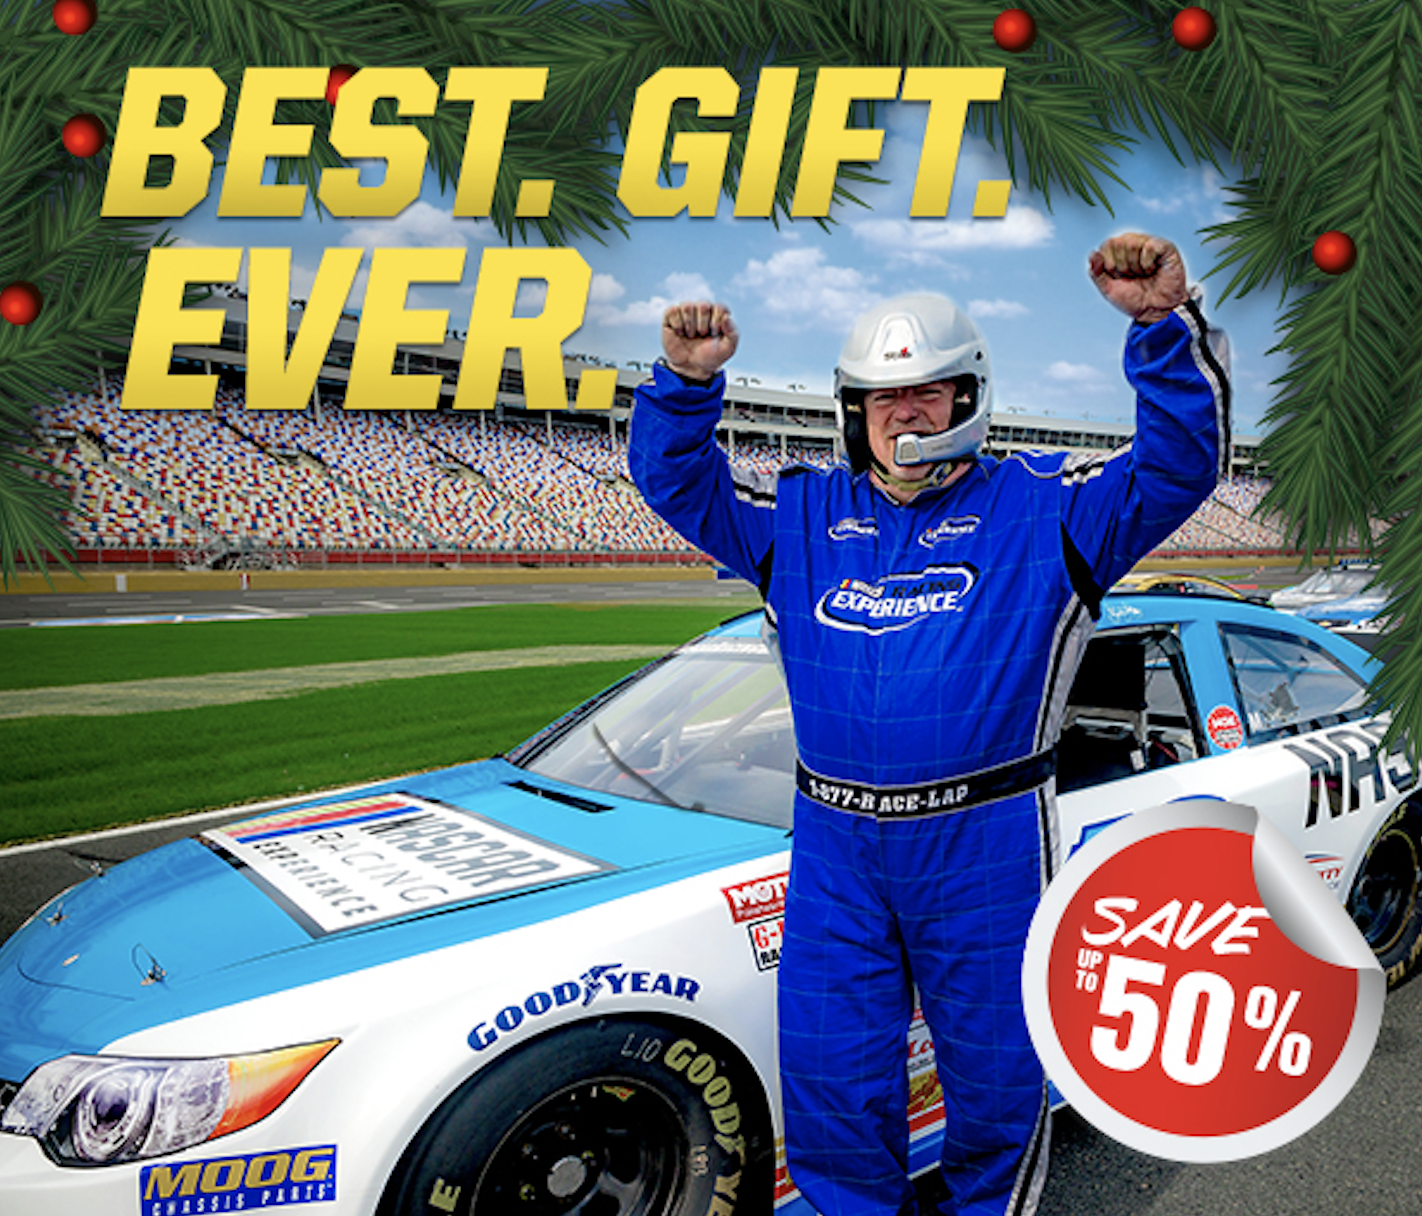 Dover international Speedway Richard Petty Driving experience Gift